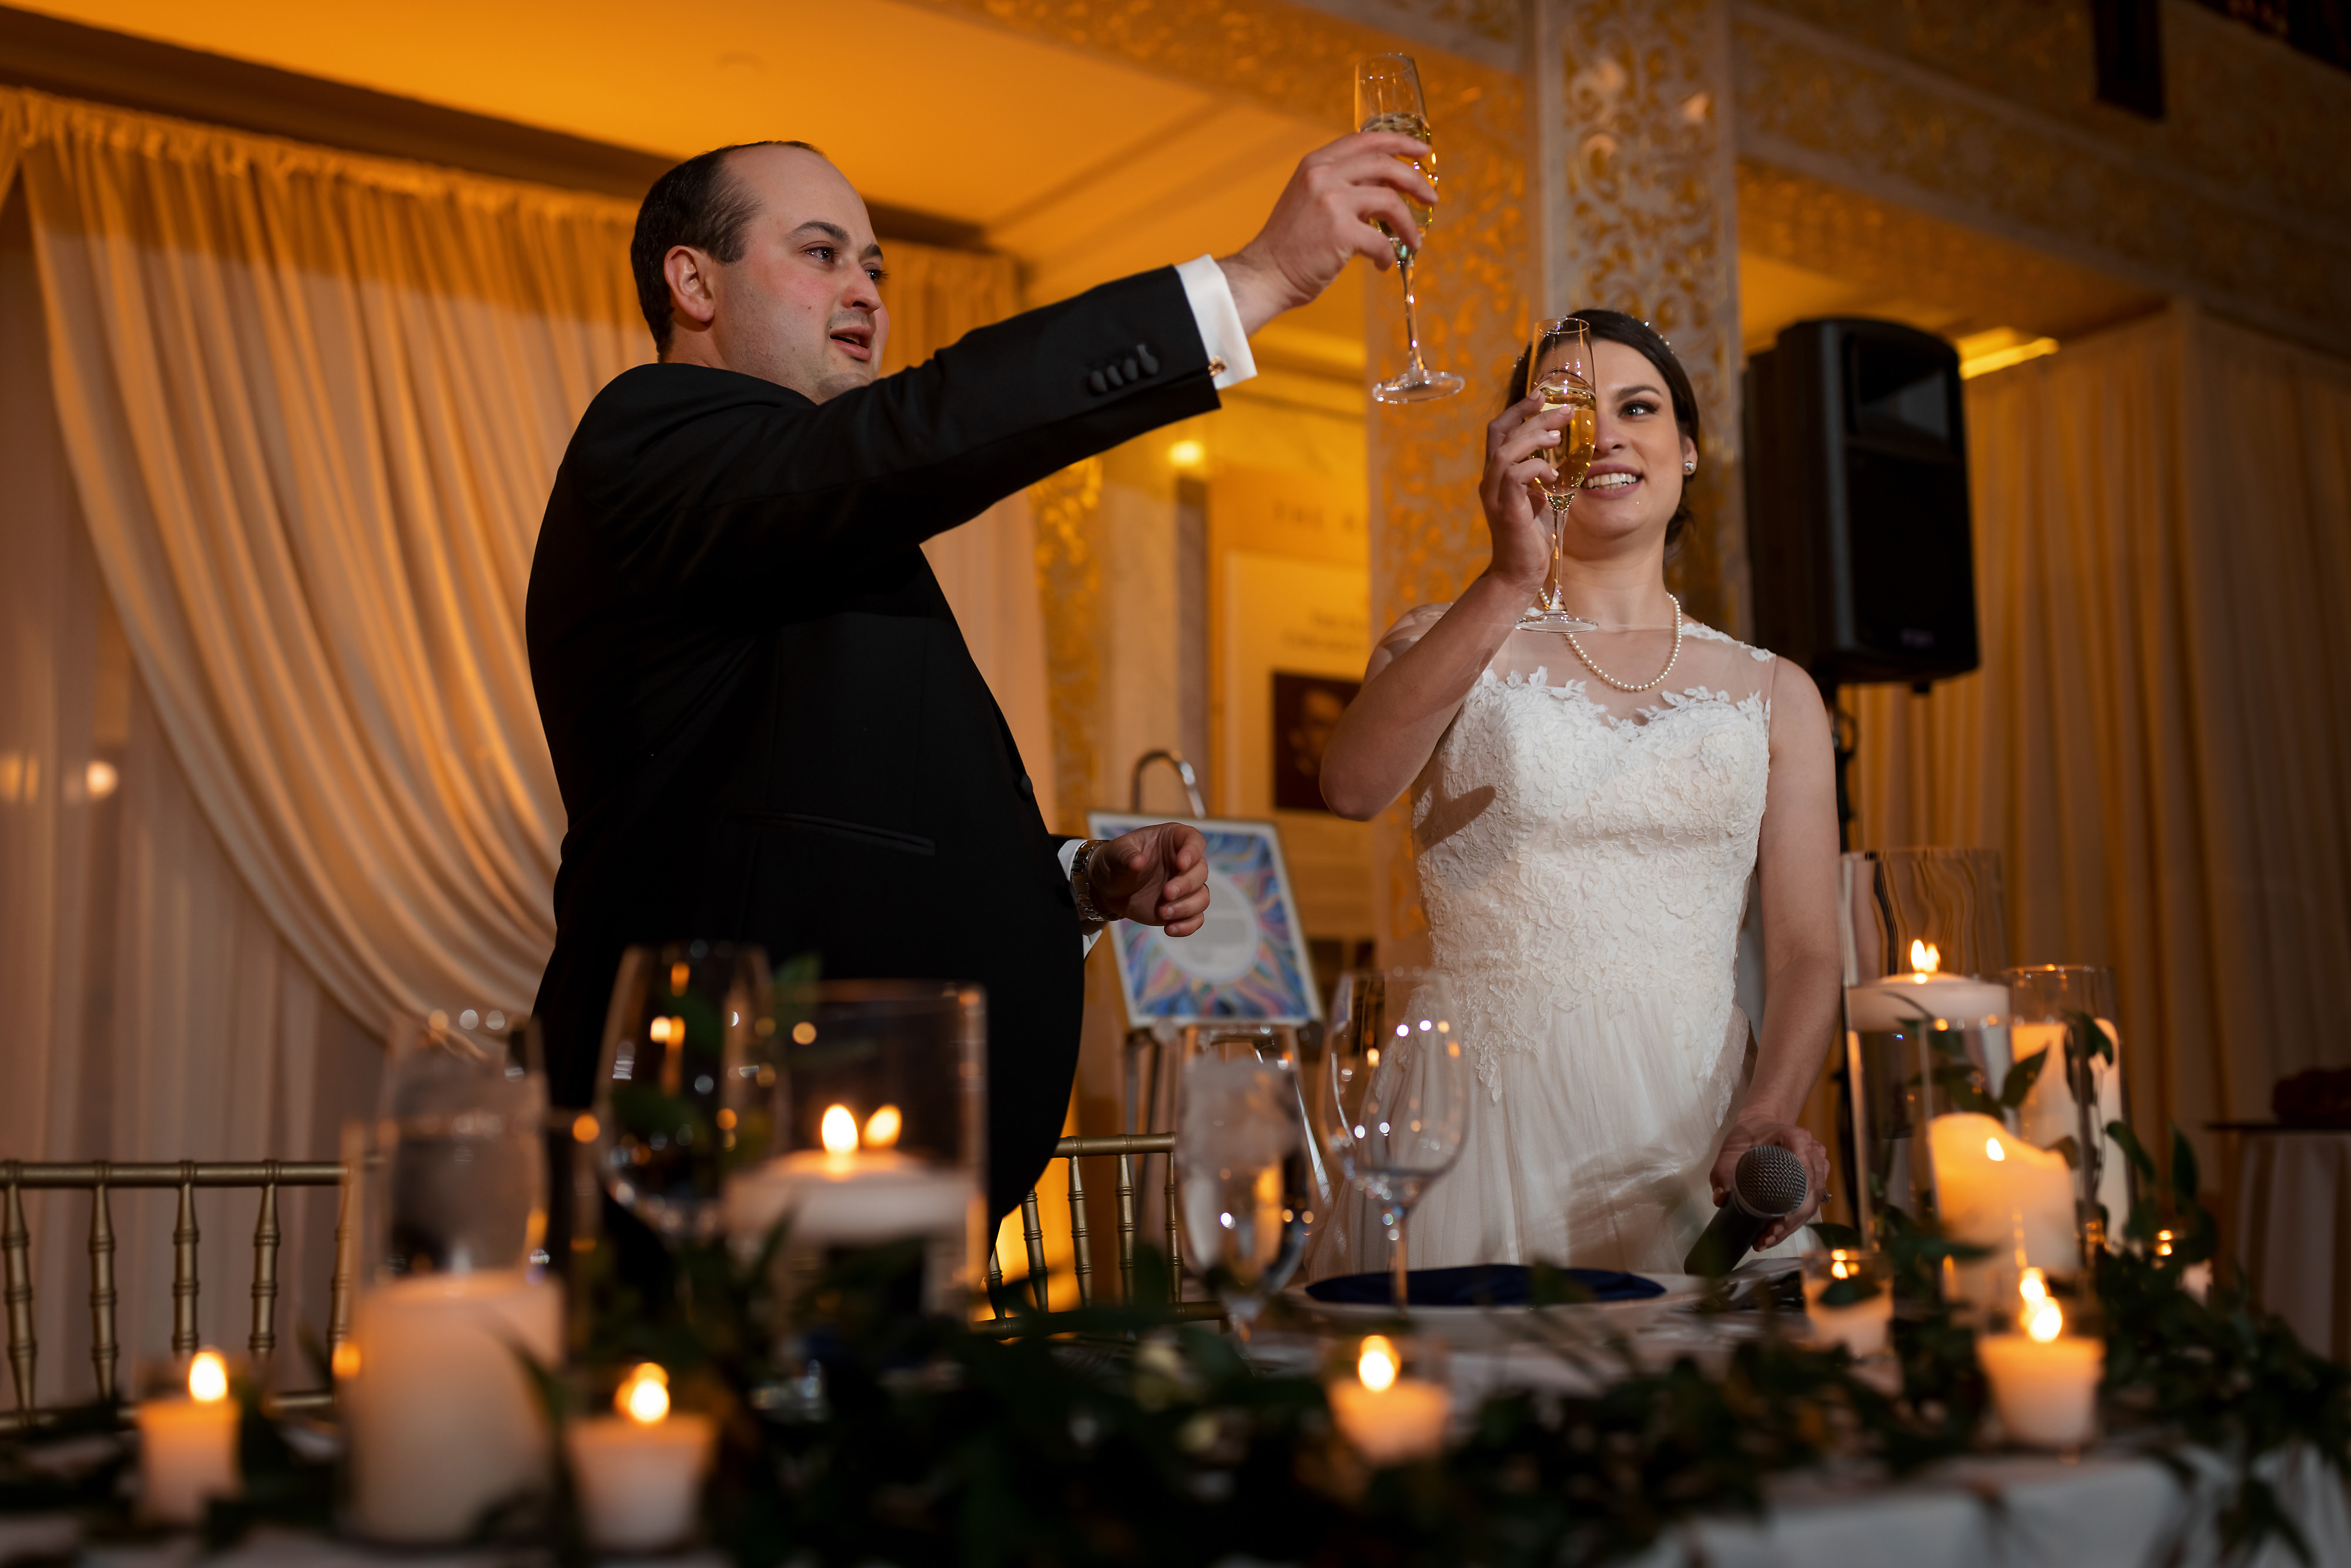 Bride and groom toast during wedding reception at the Rookery Building in Chicago